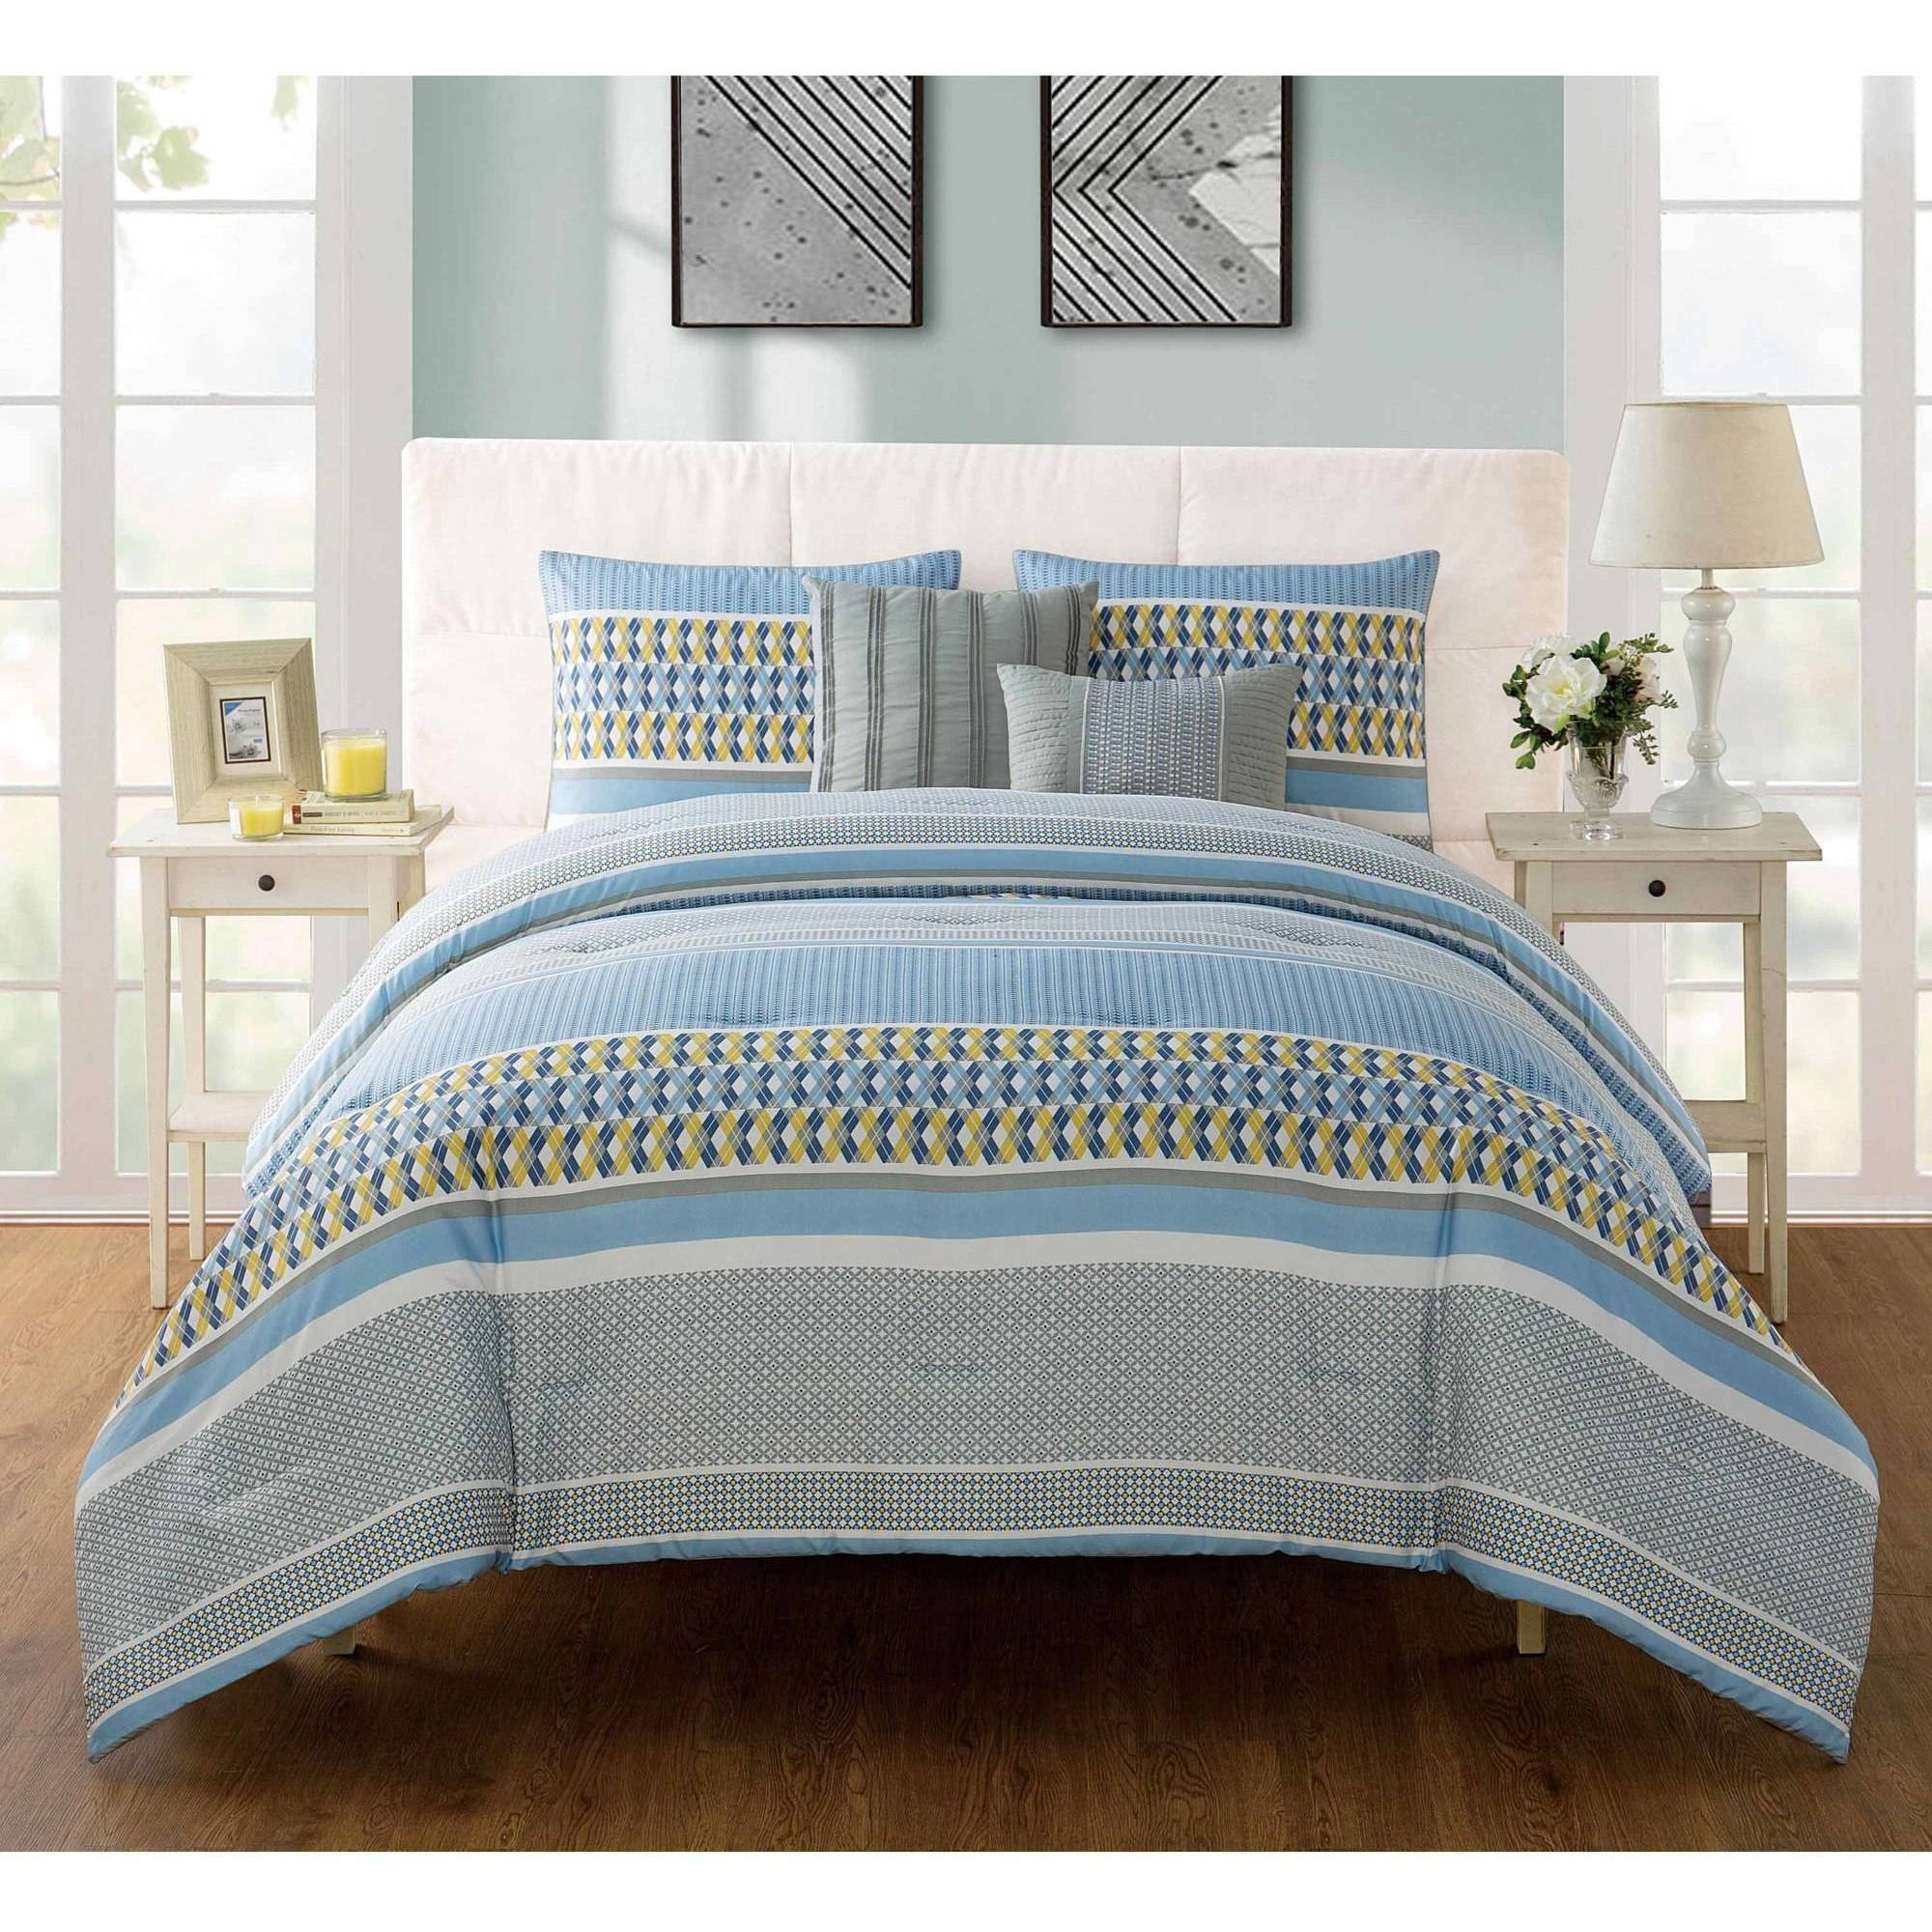 vcny home marcus geometric bedding comforter set with decorative  - vcny home marcus geometric bedding comforter set with decorative pillowsmultiple colors and sizes available  walmartcom